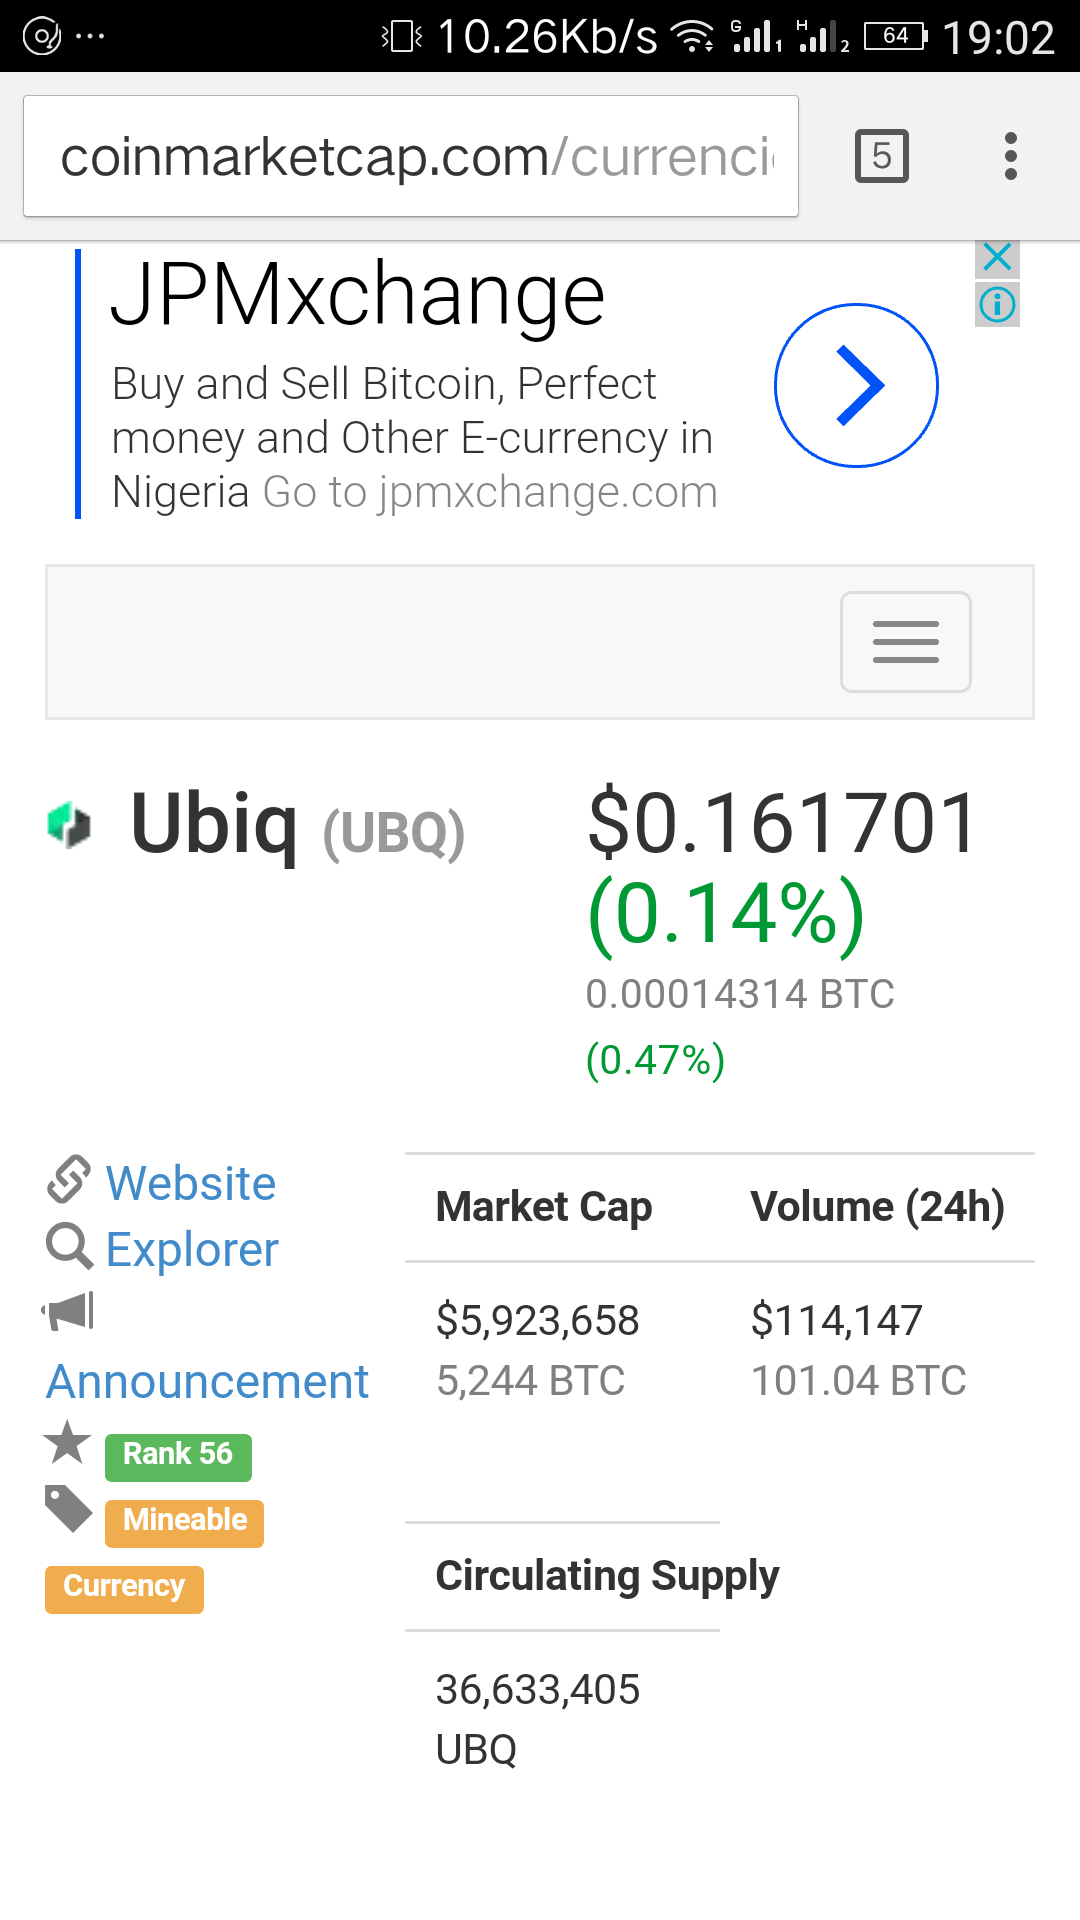 Ubiq investment CryptoGame.png-Cryptogame Project - A Investment Game To Gamify Investment Altcoins Investment